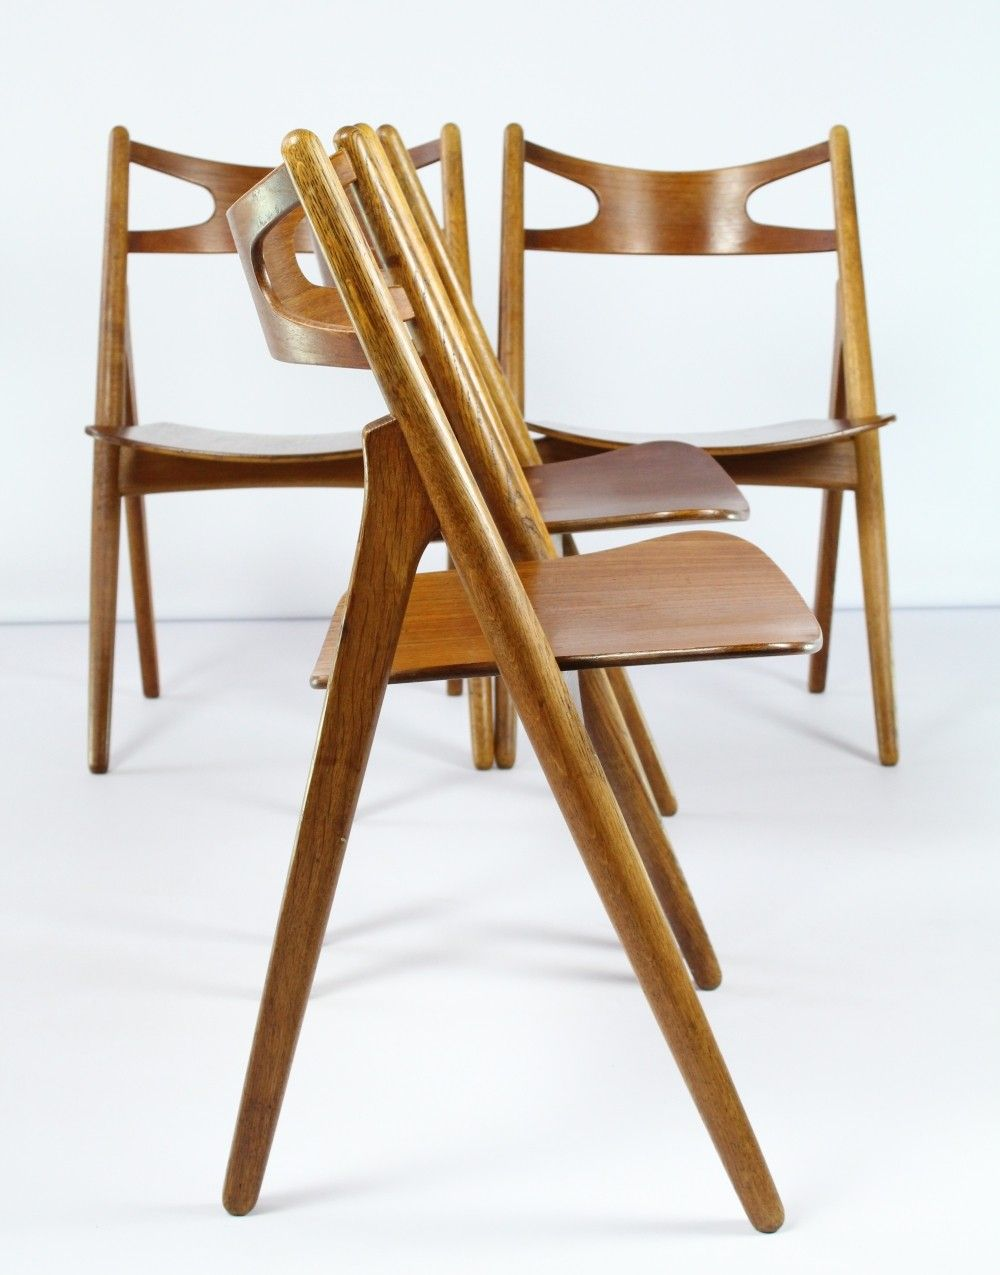 Set of 4 sawbuck chairs by Hans Wagner for Carl Hansen & son